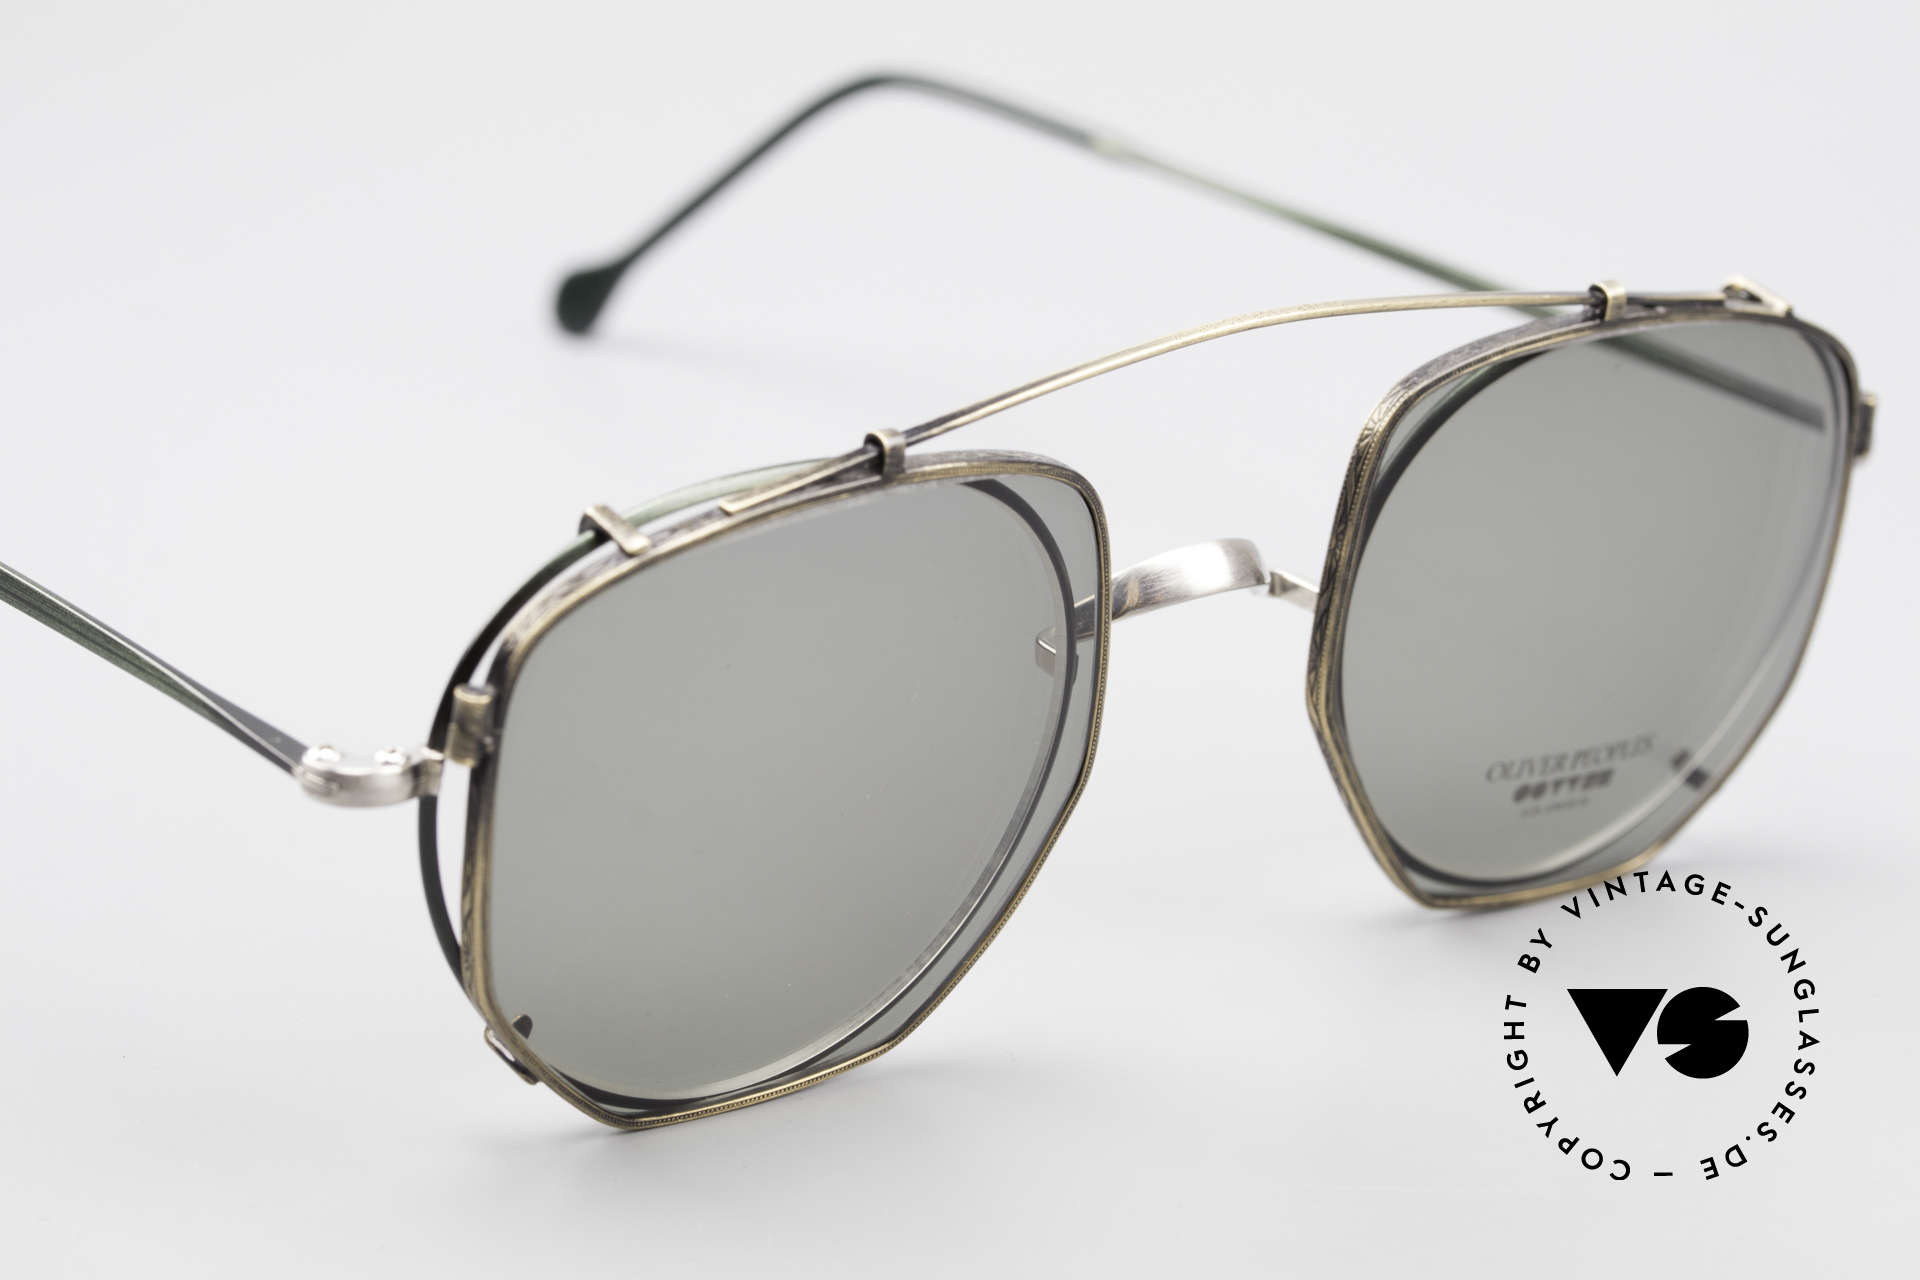 Oliver Peoples OP80BC Round Frame Square Clip On, well, the combination fits & looks cool; one of a kind!, Made for Men and Women